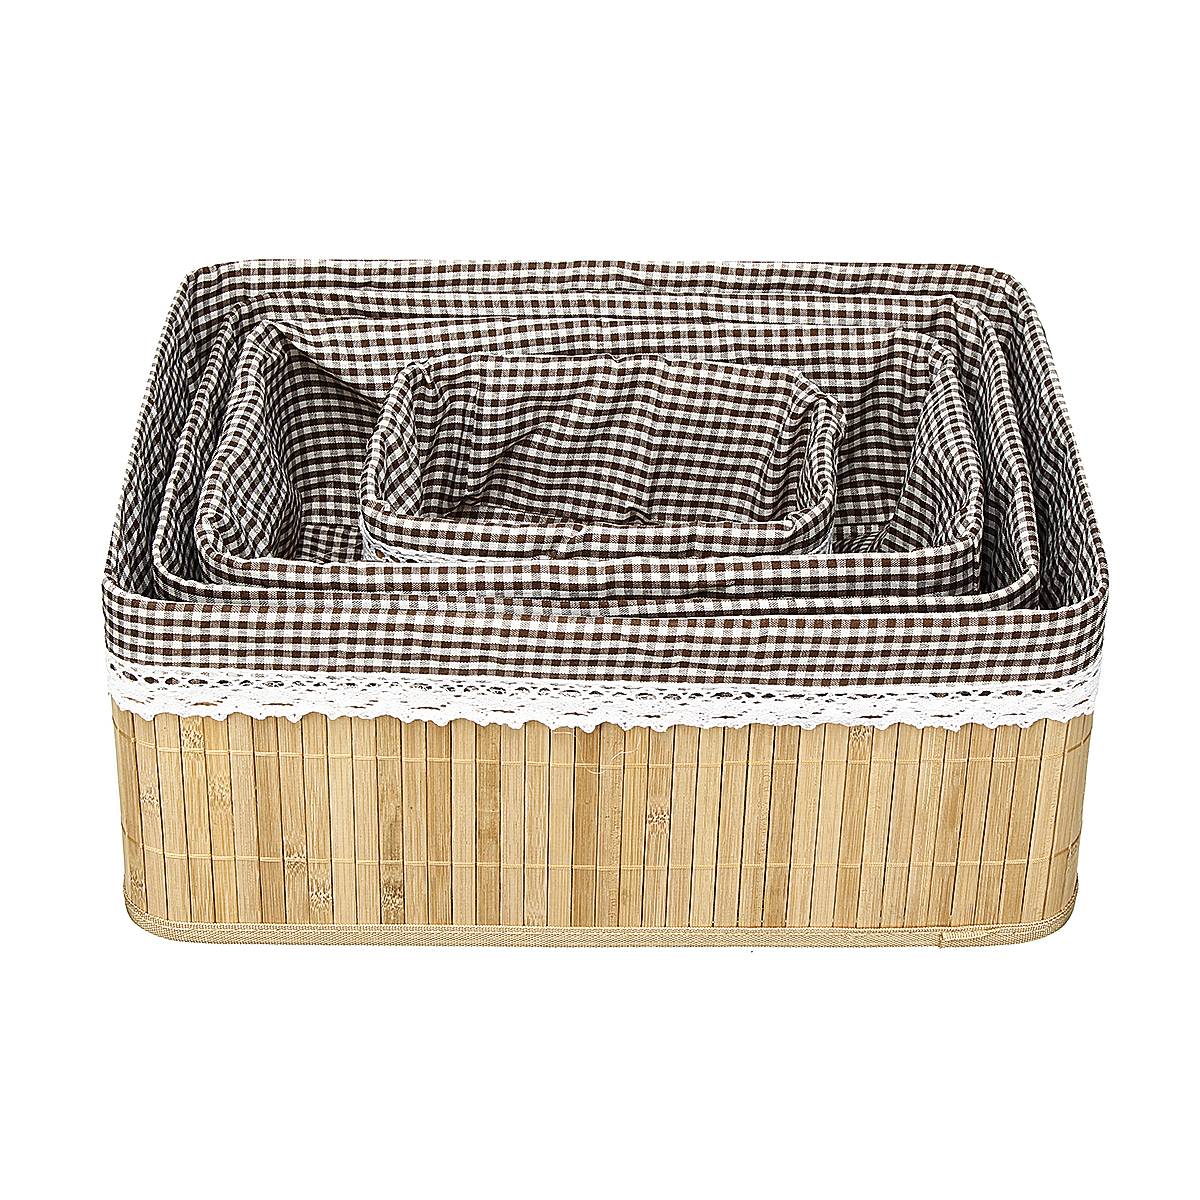 Bamboo Weaving Storage Baskets Picnic Grocery Snacks Toy Box Desktop Organizer